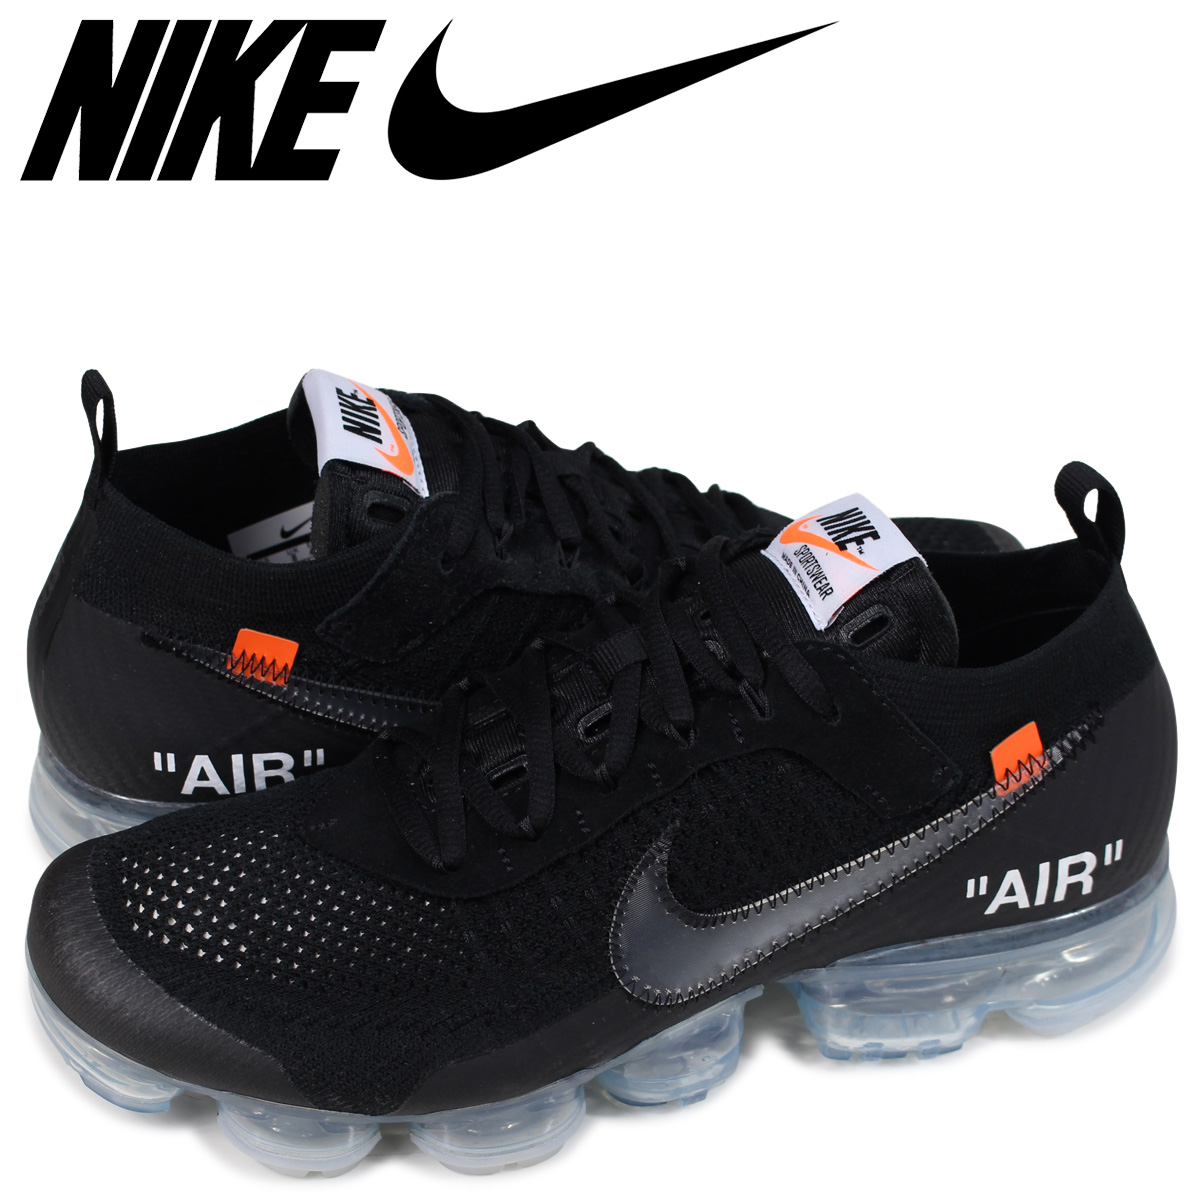 3706bbc06a9a51 ALLSPORTS  NIKE AIR VAPORMAX FLYKNIT THE TEN Nike air vapor max fried food  knit sneakers men AA3831-002 black  185